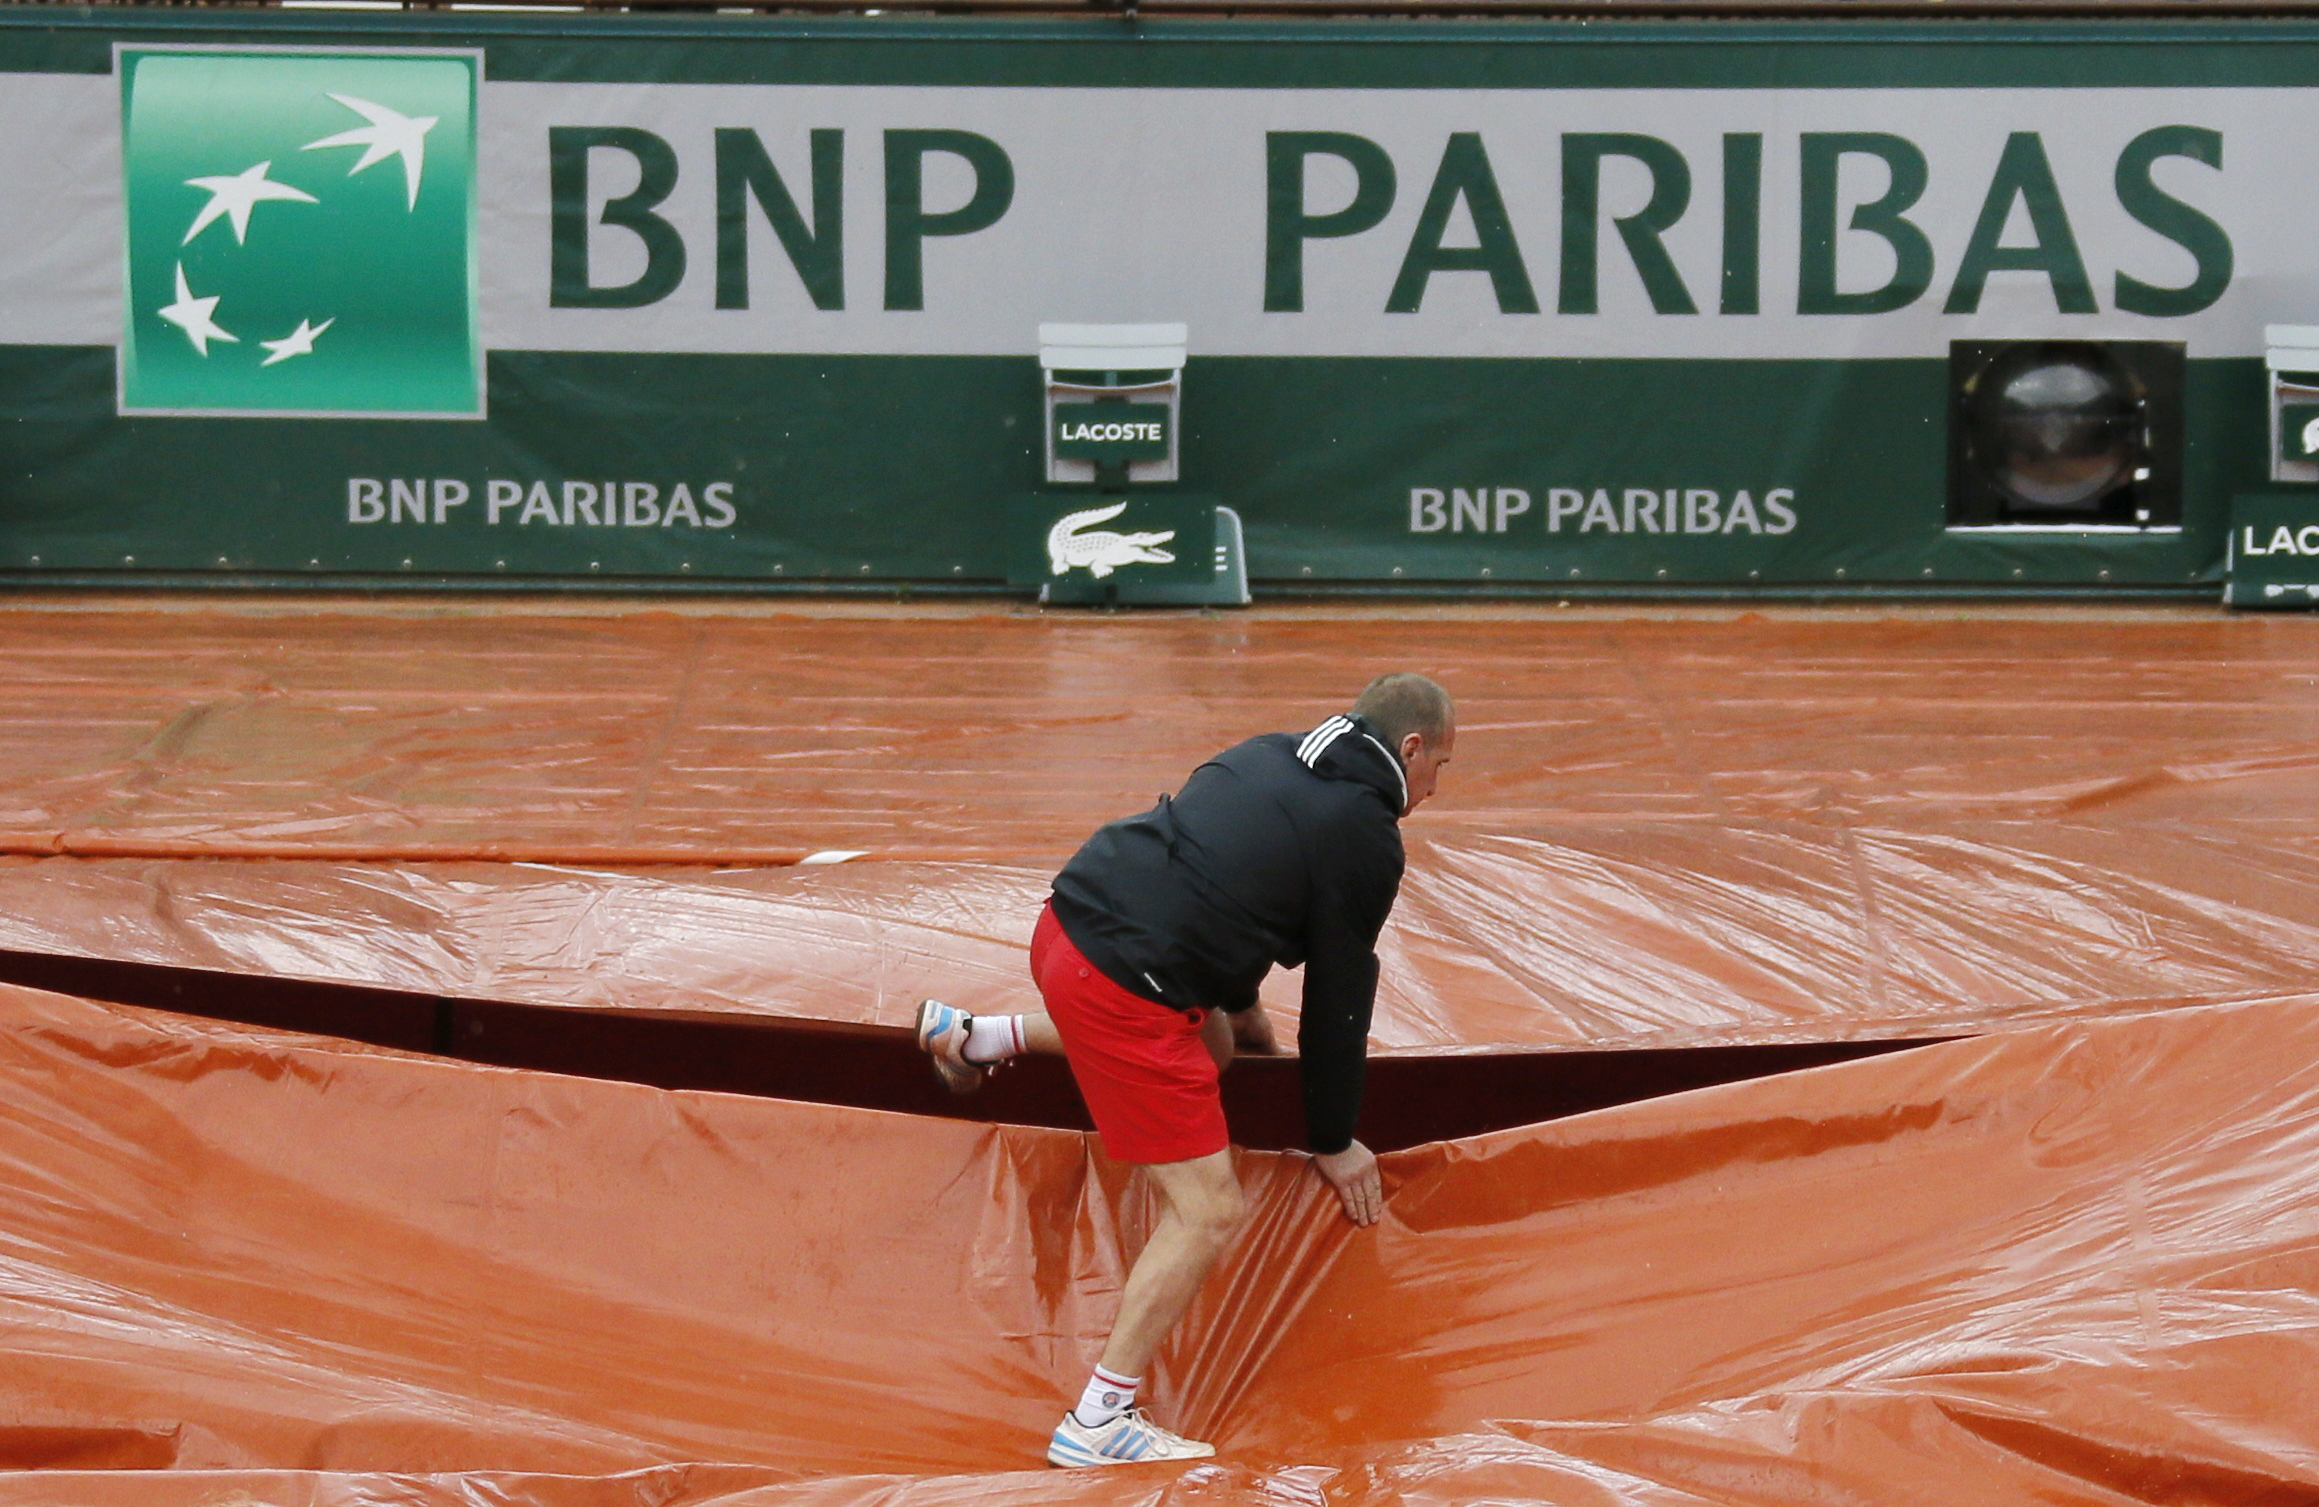 A grounds crew member covers the clay court from rain near the logo of BNP Paribas during the French Open tennis tournament at Roland Garros in Paris May 30, 2014. Shares in France's biggest bank BNP Paribas fell sharply on Friday on concerns a possible fine for alleged sanctions after a report in the Wall Street Journal said the U.S. Justice Department wanted $10 billion from the bank - double the amount which had been previously reported.   REUTERS/Gonzalo Fuentes (FRANCE - Tags: BUSINESS SPORT TENNIS LOGO) - RTR3RK3L